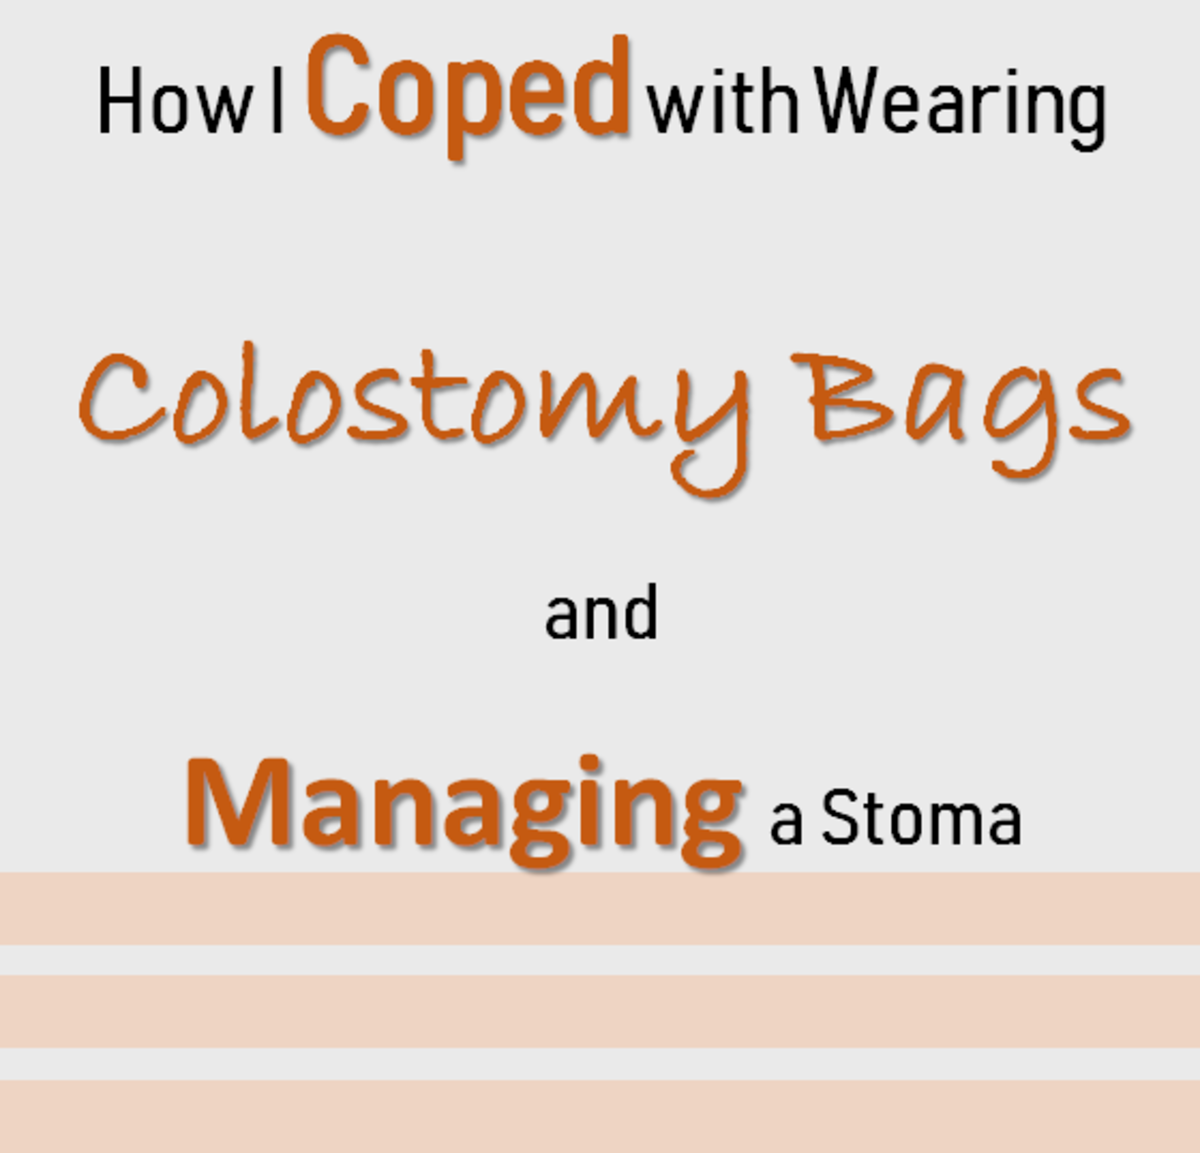 How I Coped with Wearing Colostomy Bags and Managing a Stoma